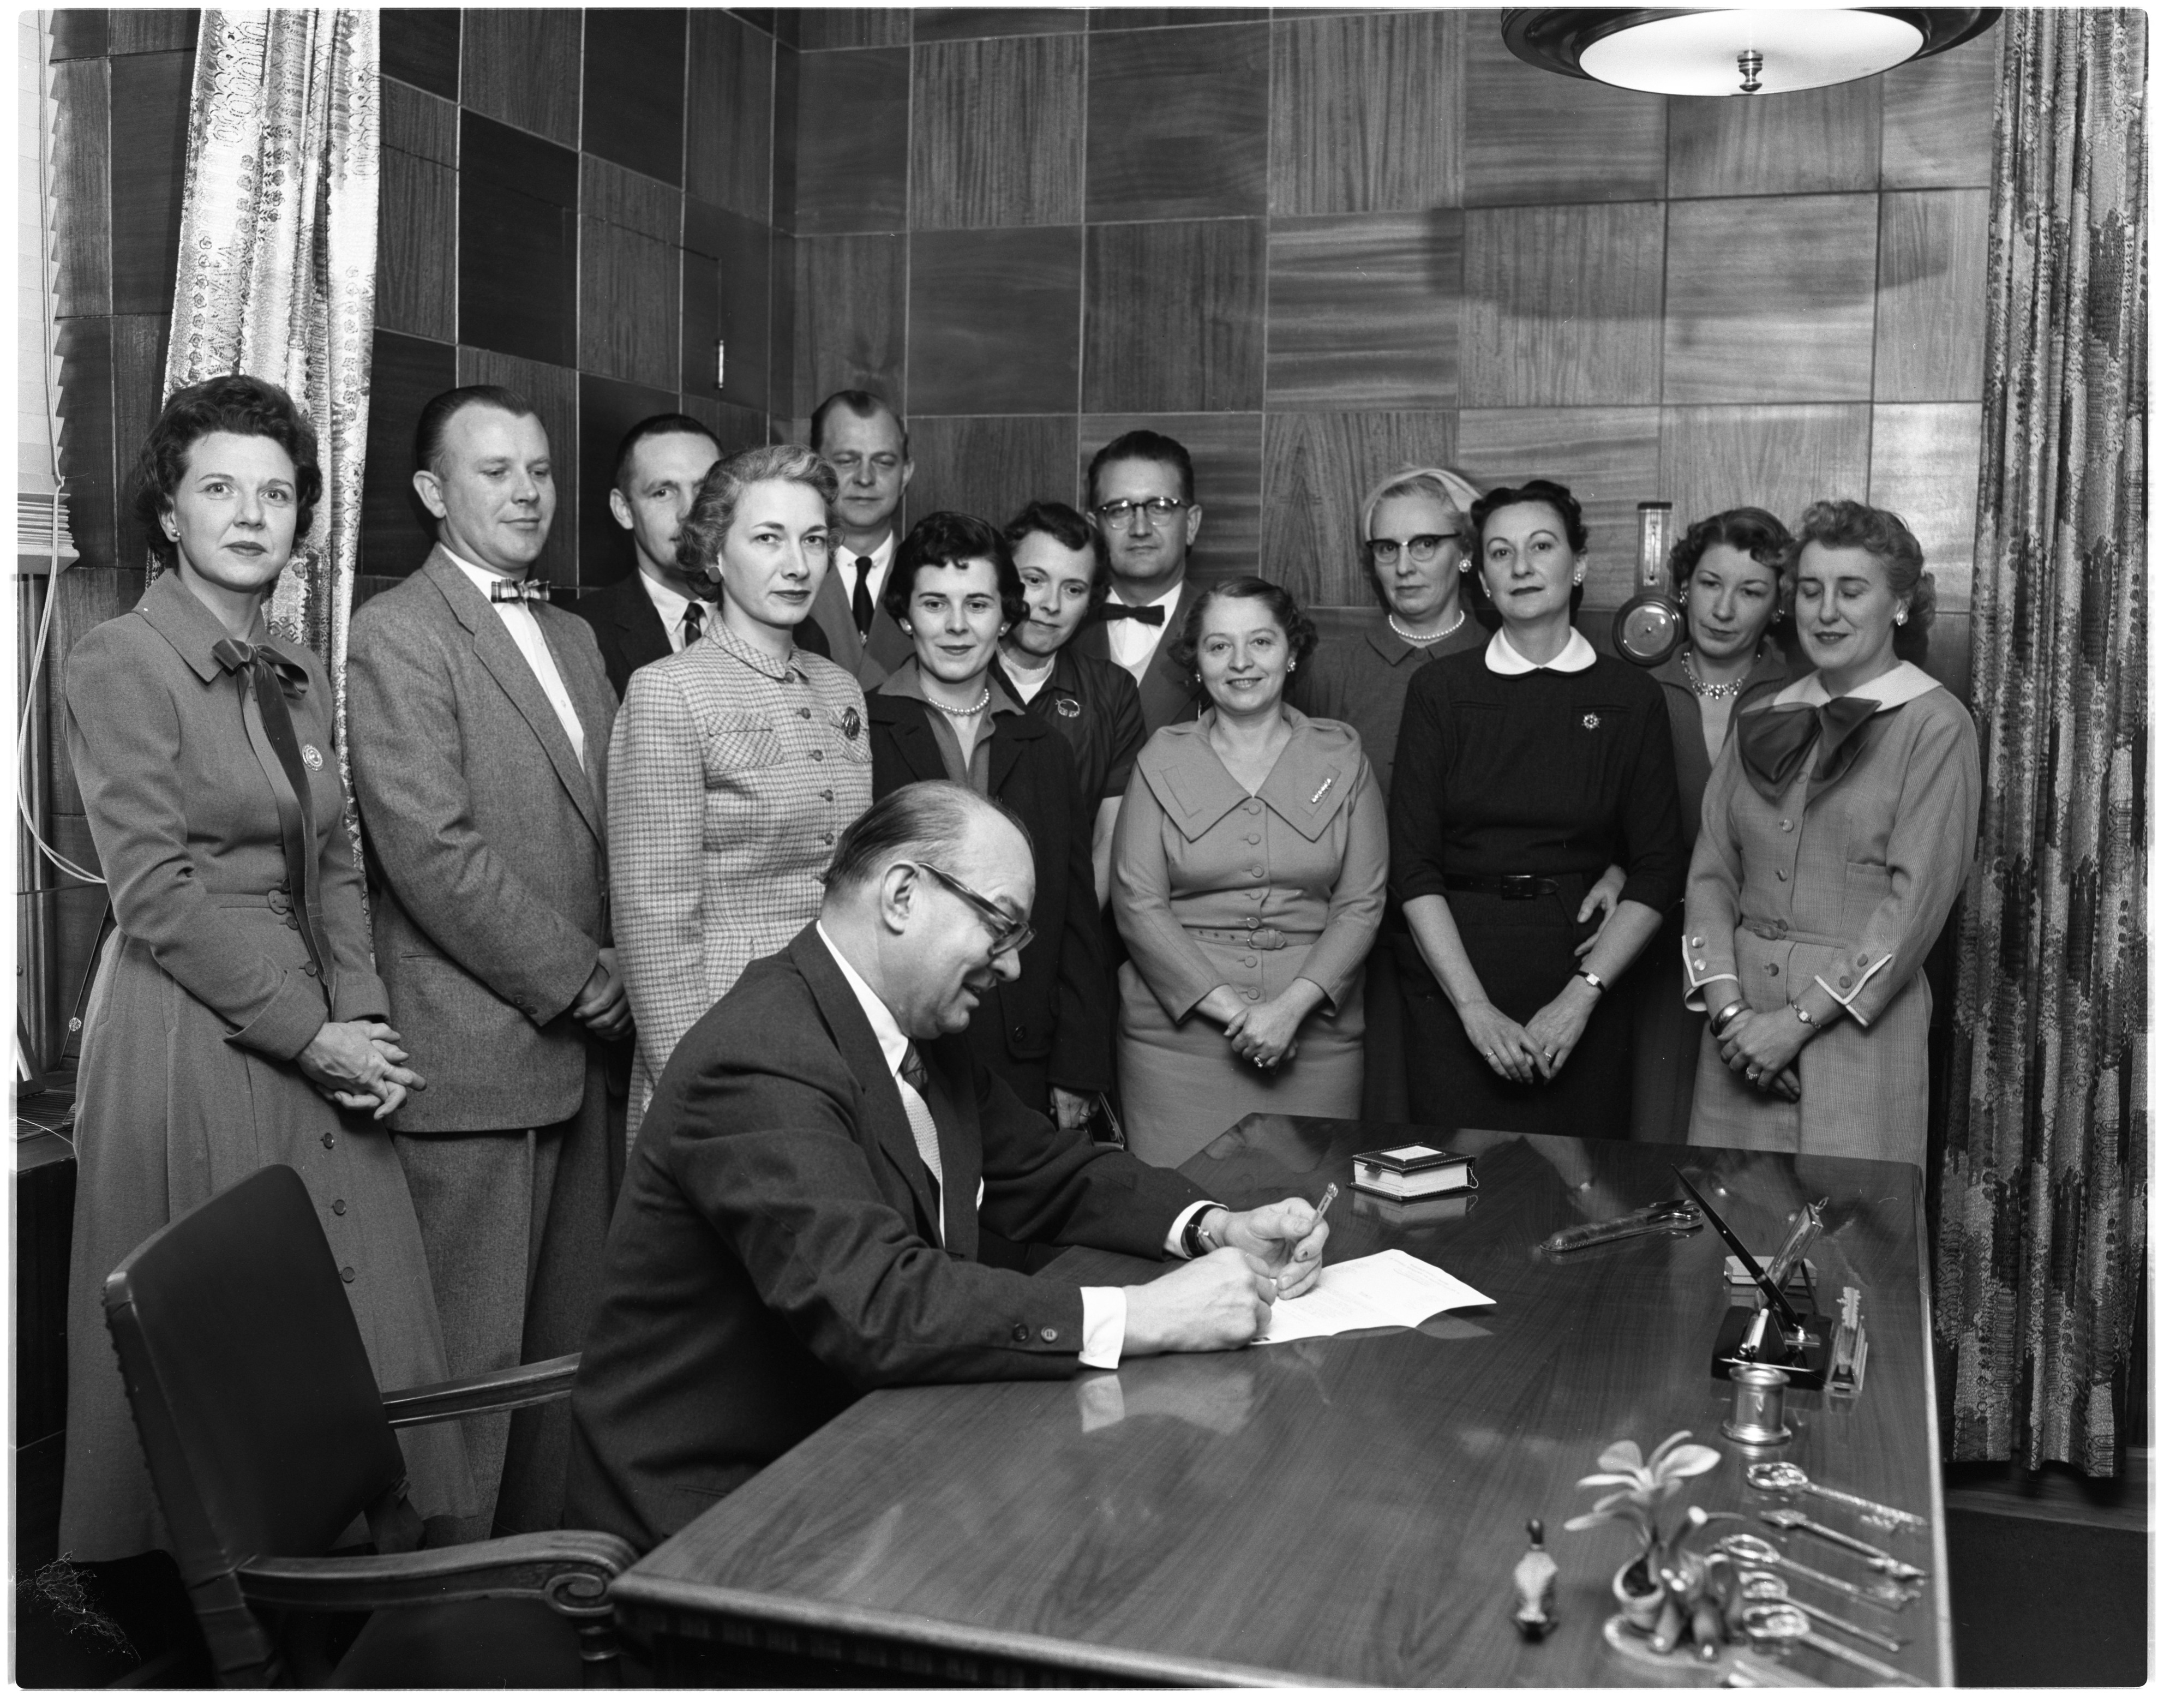 Ann Arbor Mayor William E. Brown makes January official polio month, with members March of Dimes drive committee, January 1956 image